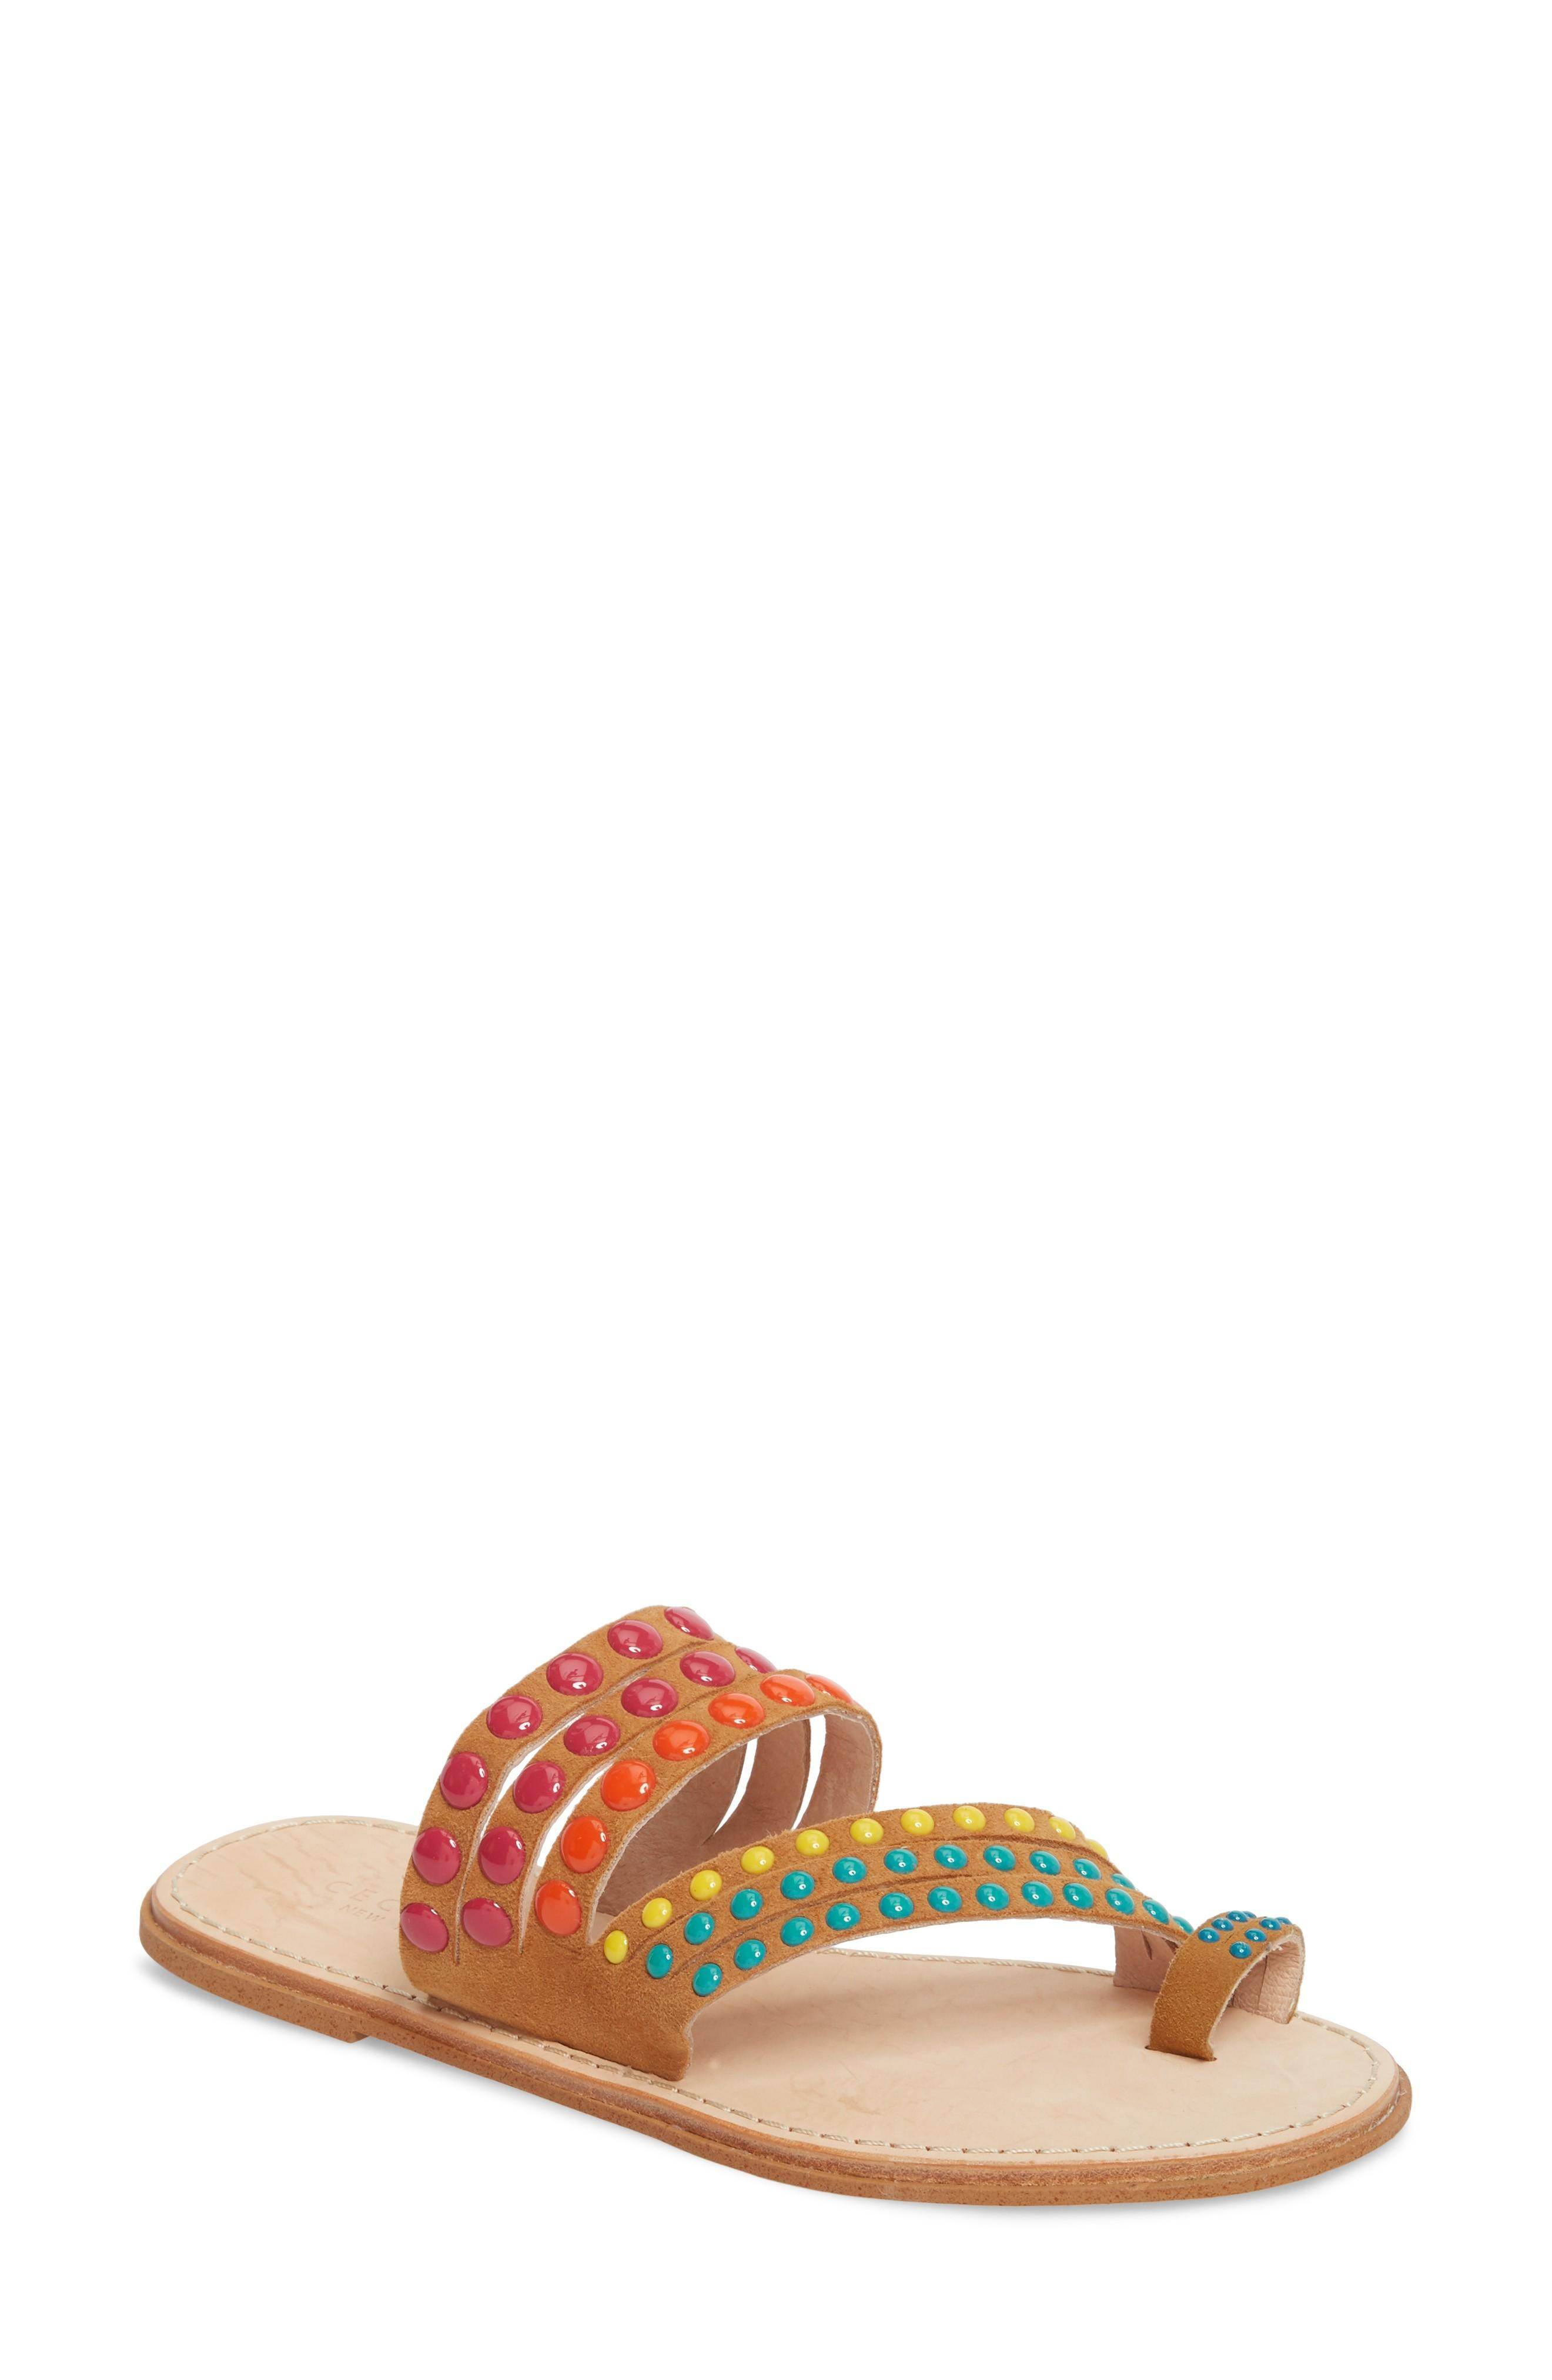 Cecelia New York Pezz Studded Sandal In Tan Print Suede